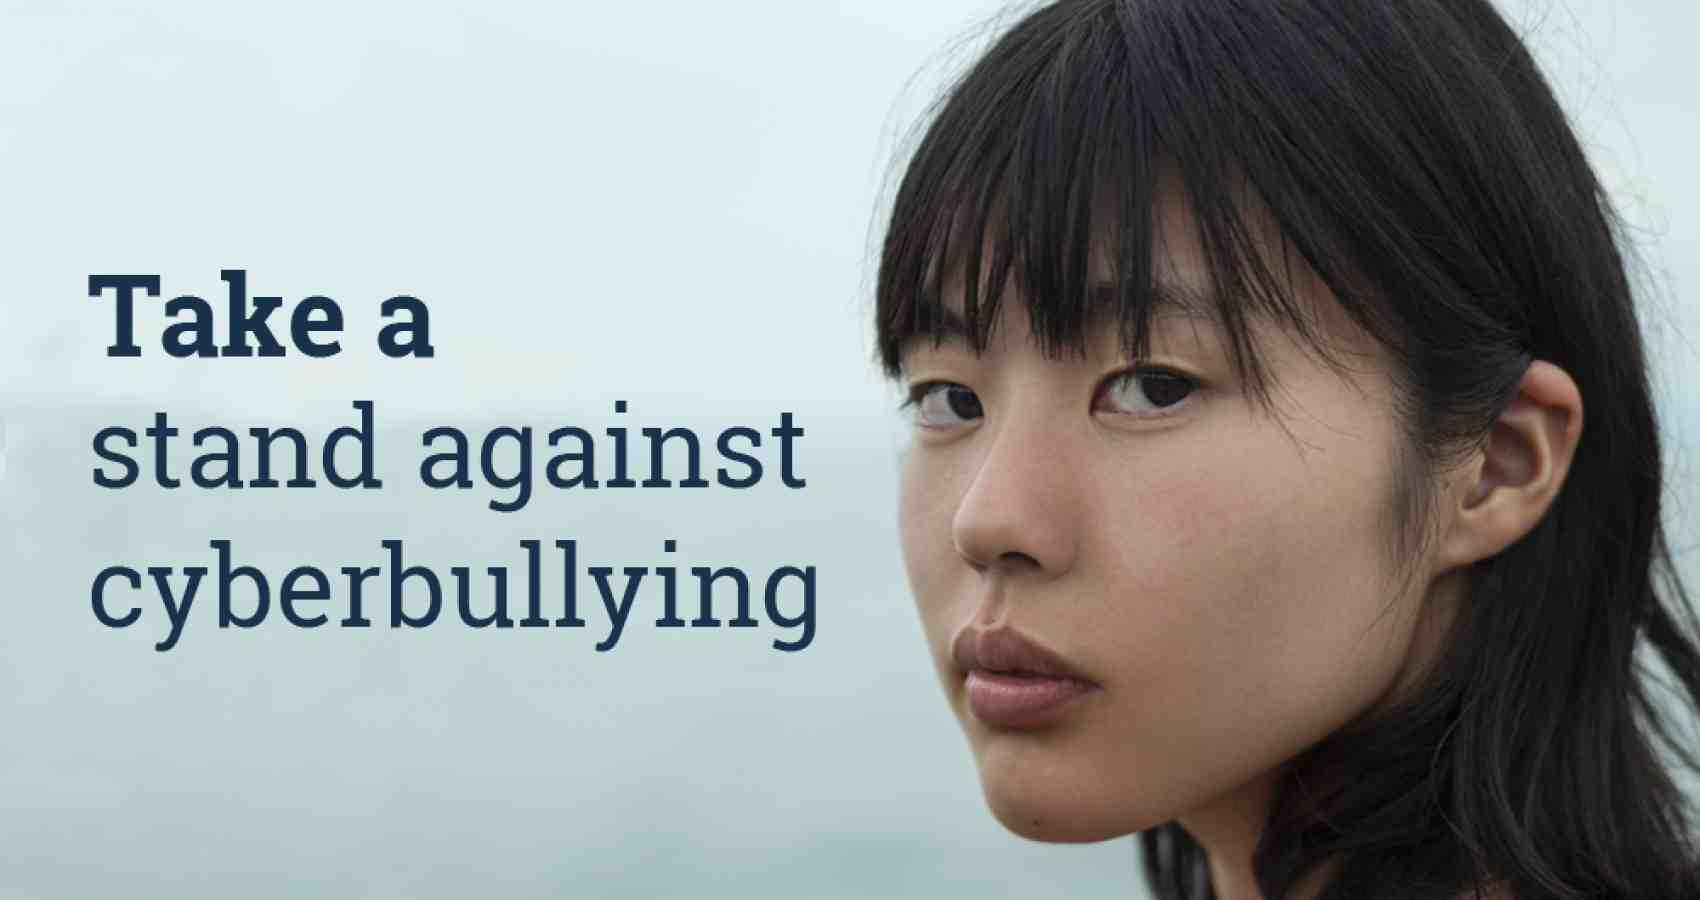 Take a stand against cyberbullying